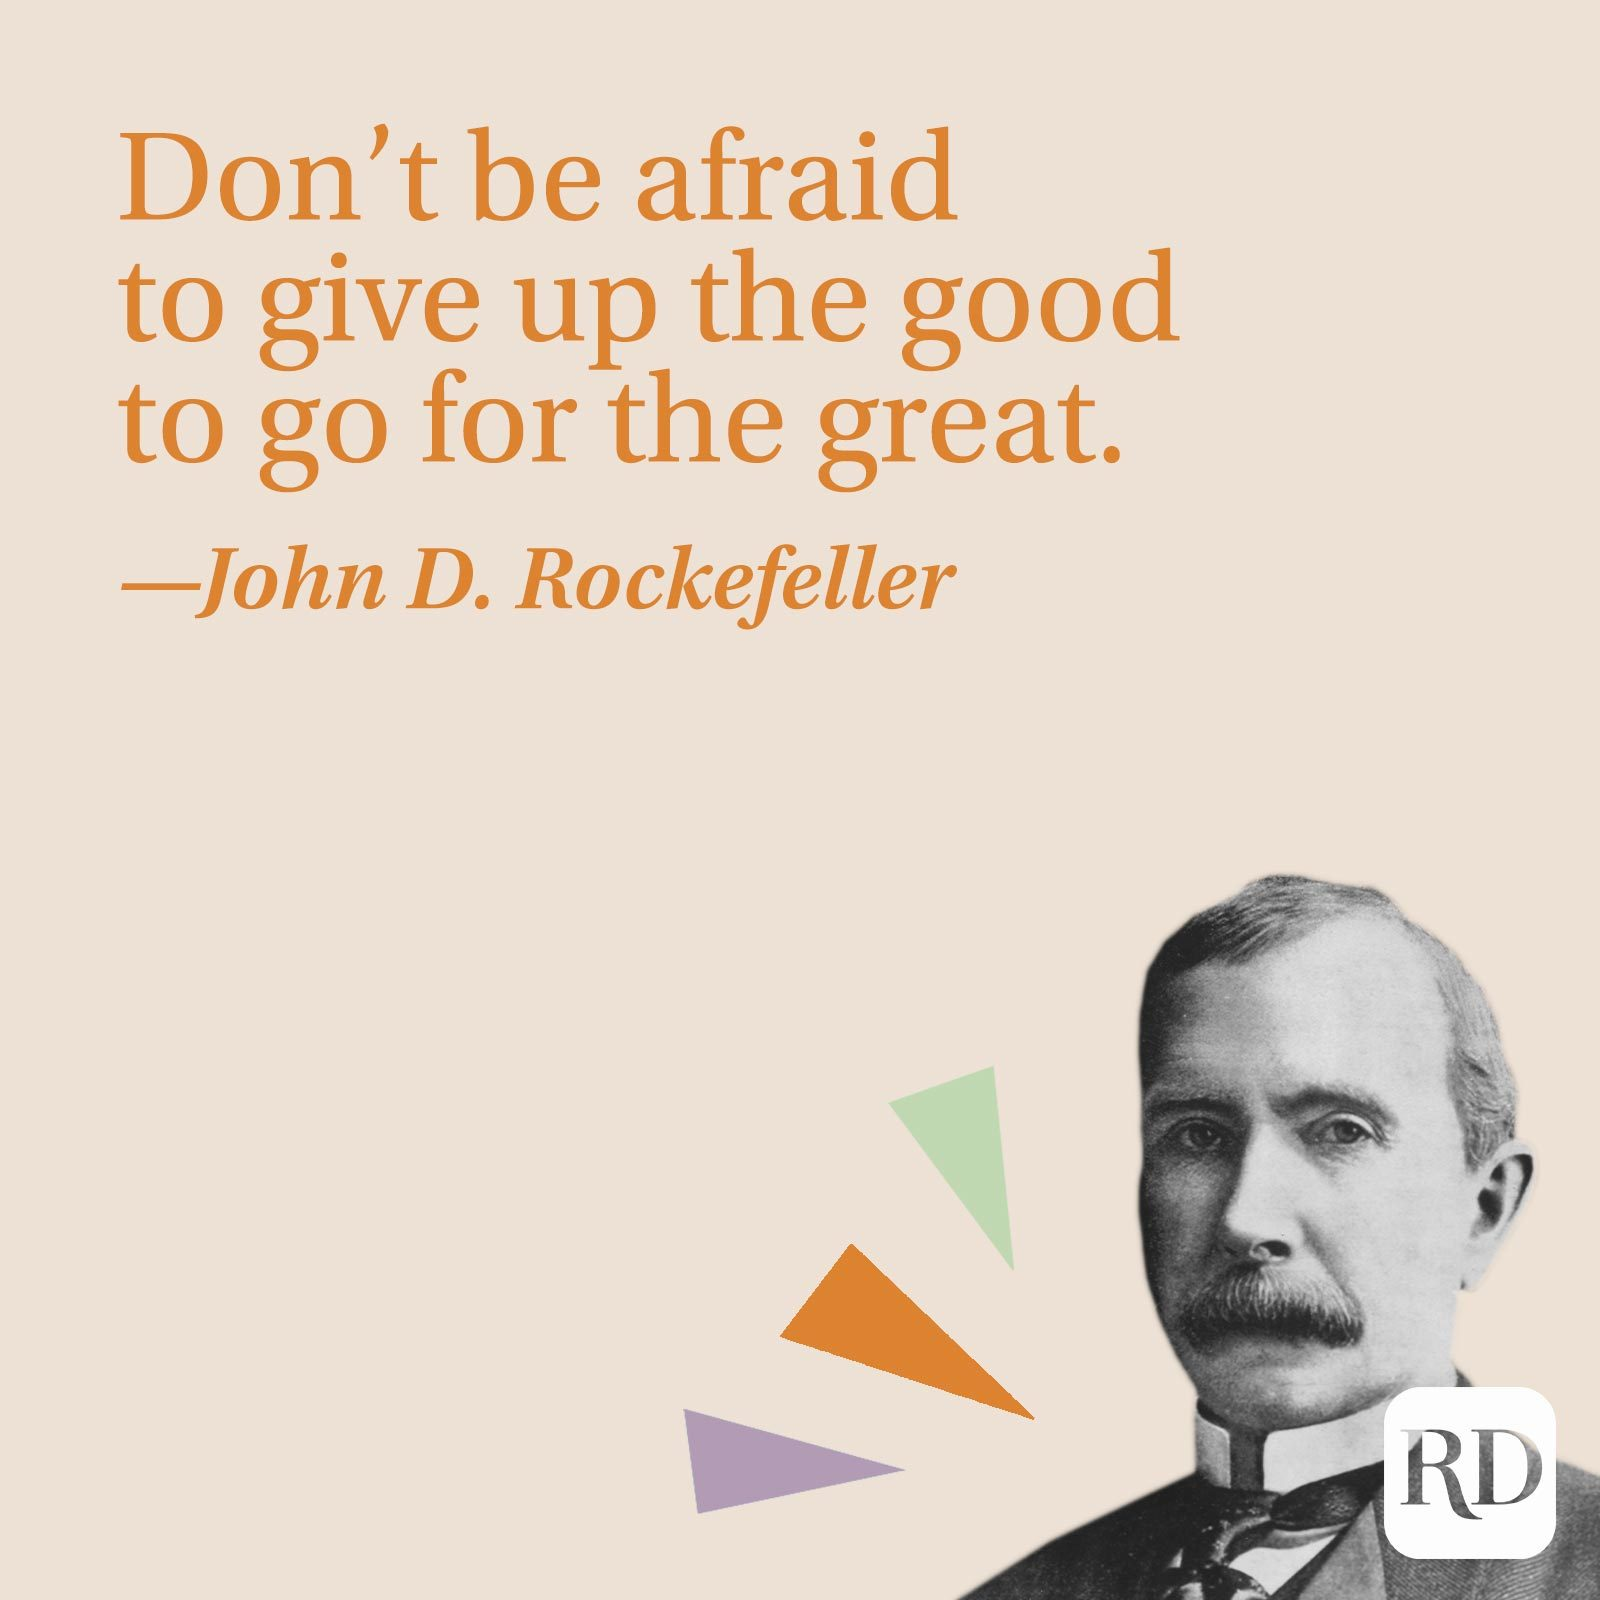 """""""Don't be afraid to give up the good to go for the great."""" —John D. Rockefeller"""